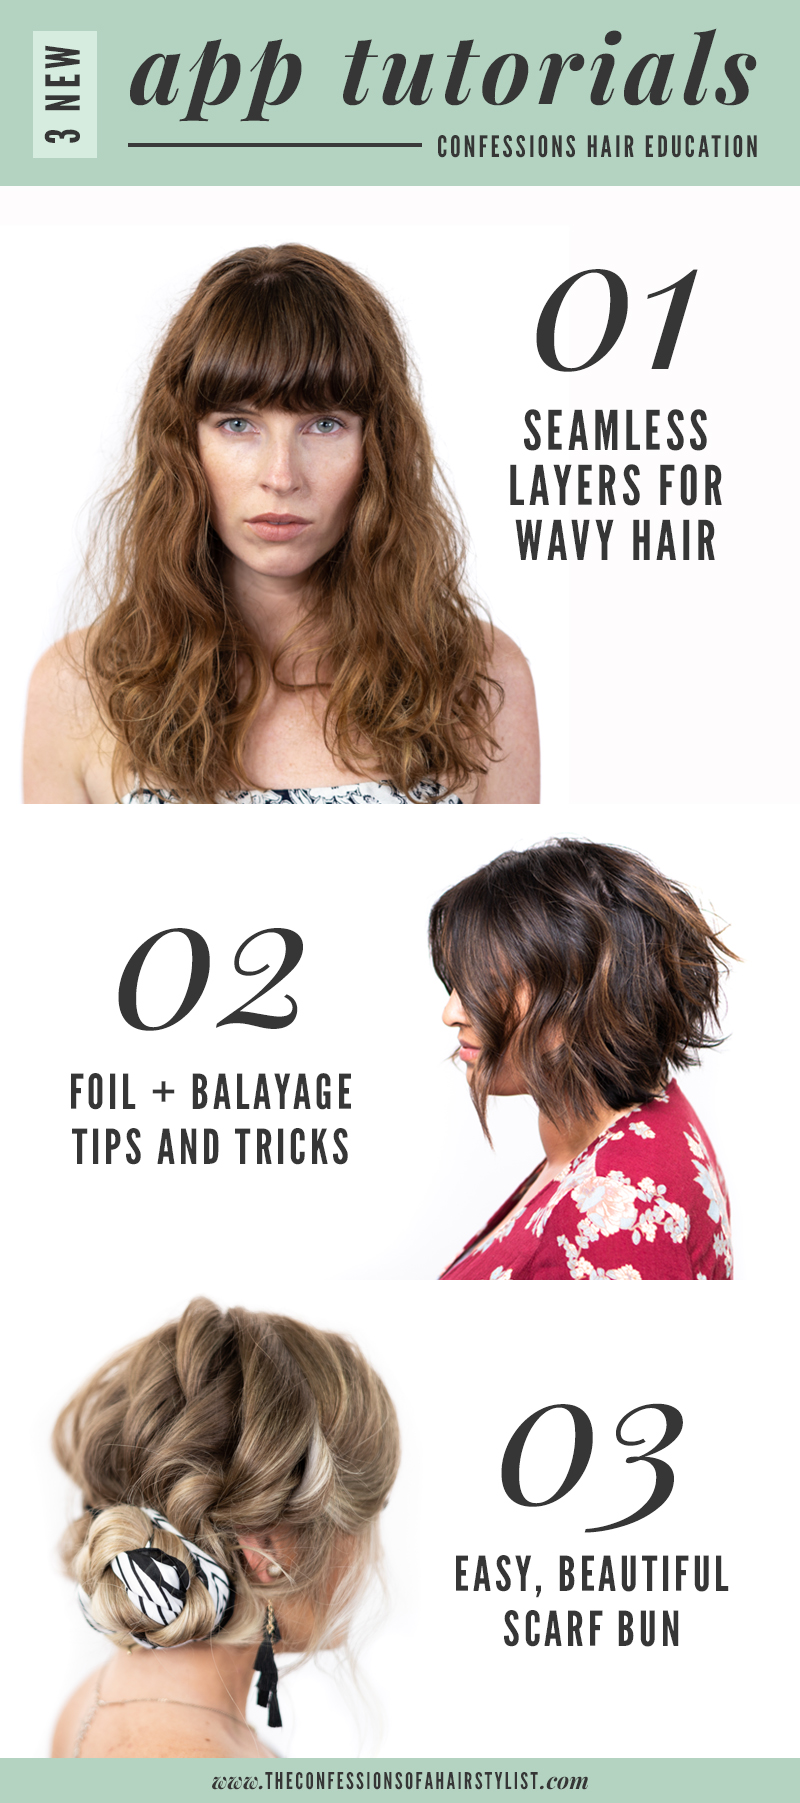 New July tutorials + looks on the Confessions of a Hairstylist education app!